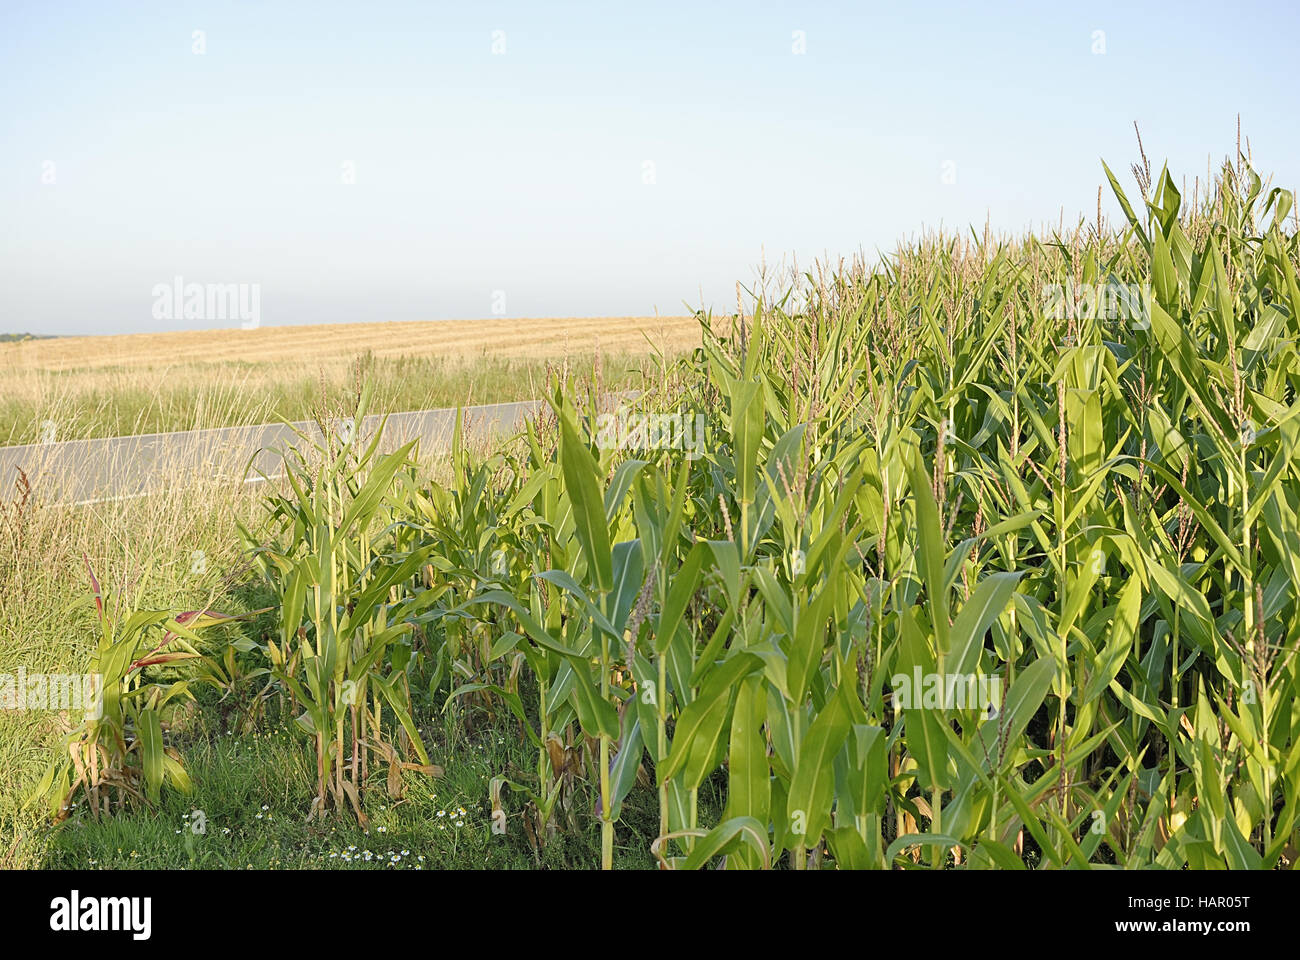 maisfeld - maize/corn field - Stock Image